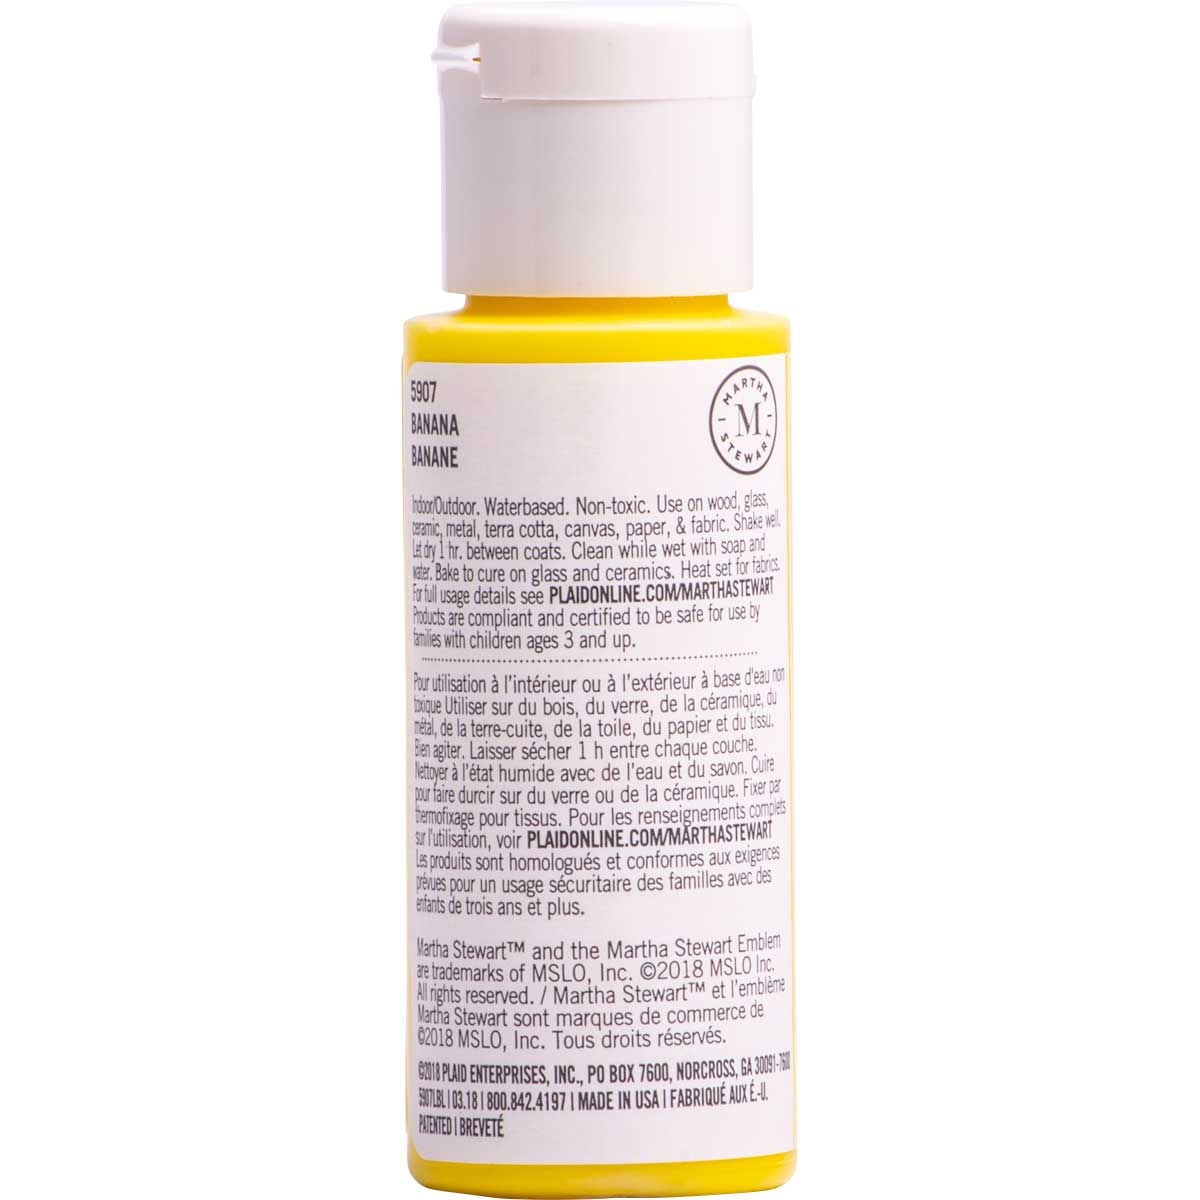 Martha Stewart ® Multi-Surface Satin Acrylic Craft Paint CPSIA - Banana, 2 oz.